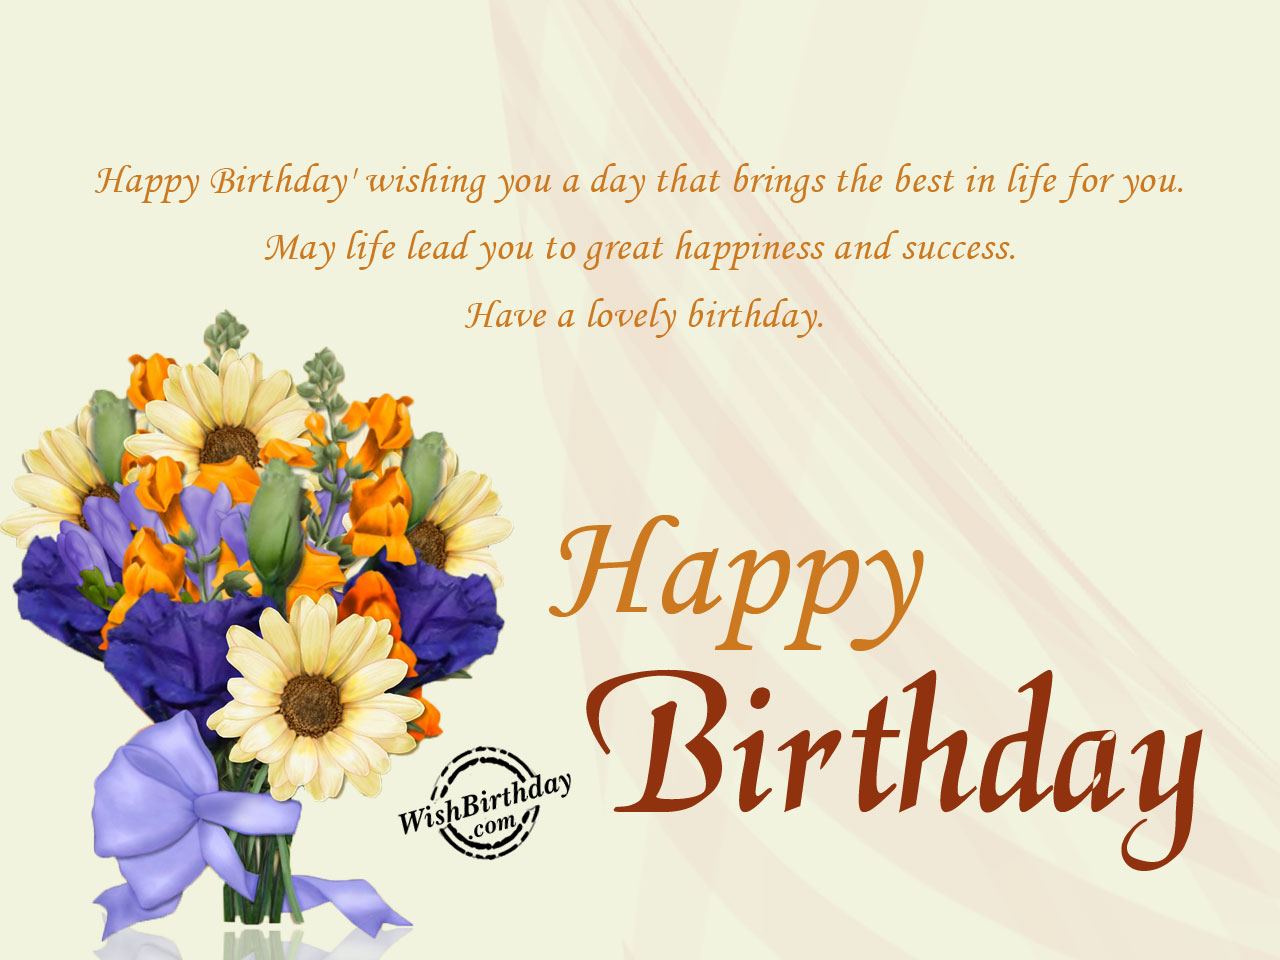 Birthday wishes with flowers birthday images pictures wish you a day brings the best in life for you izmirmasajfo Choice Image